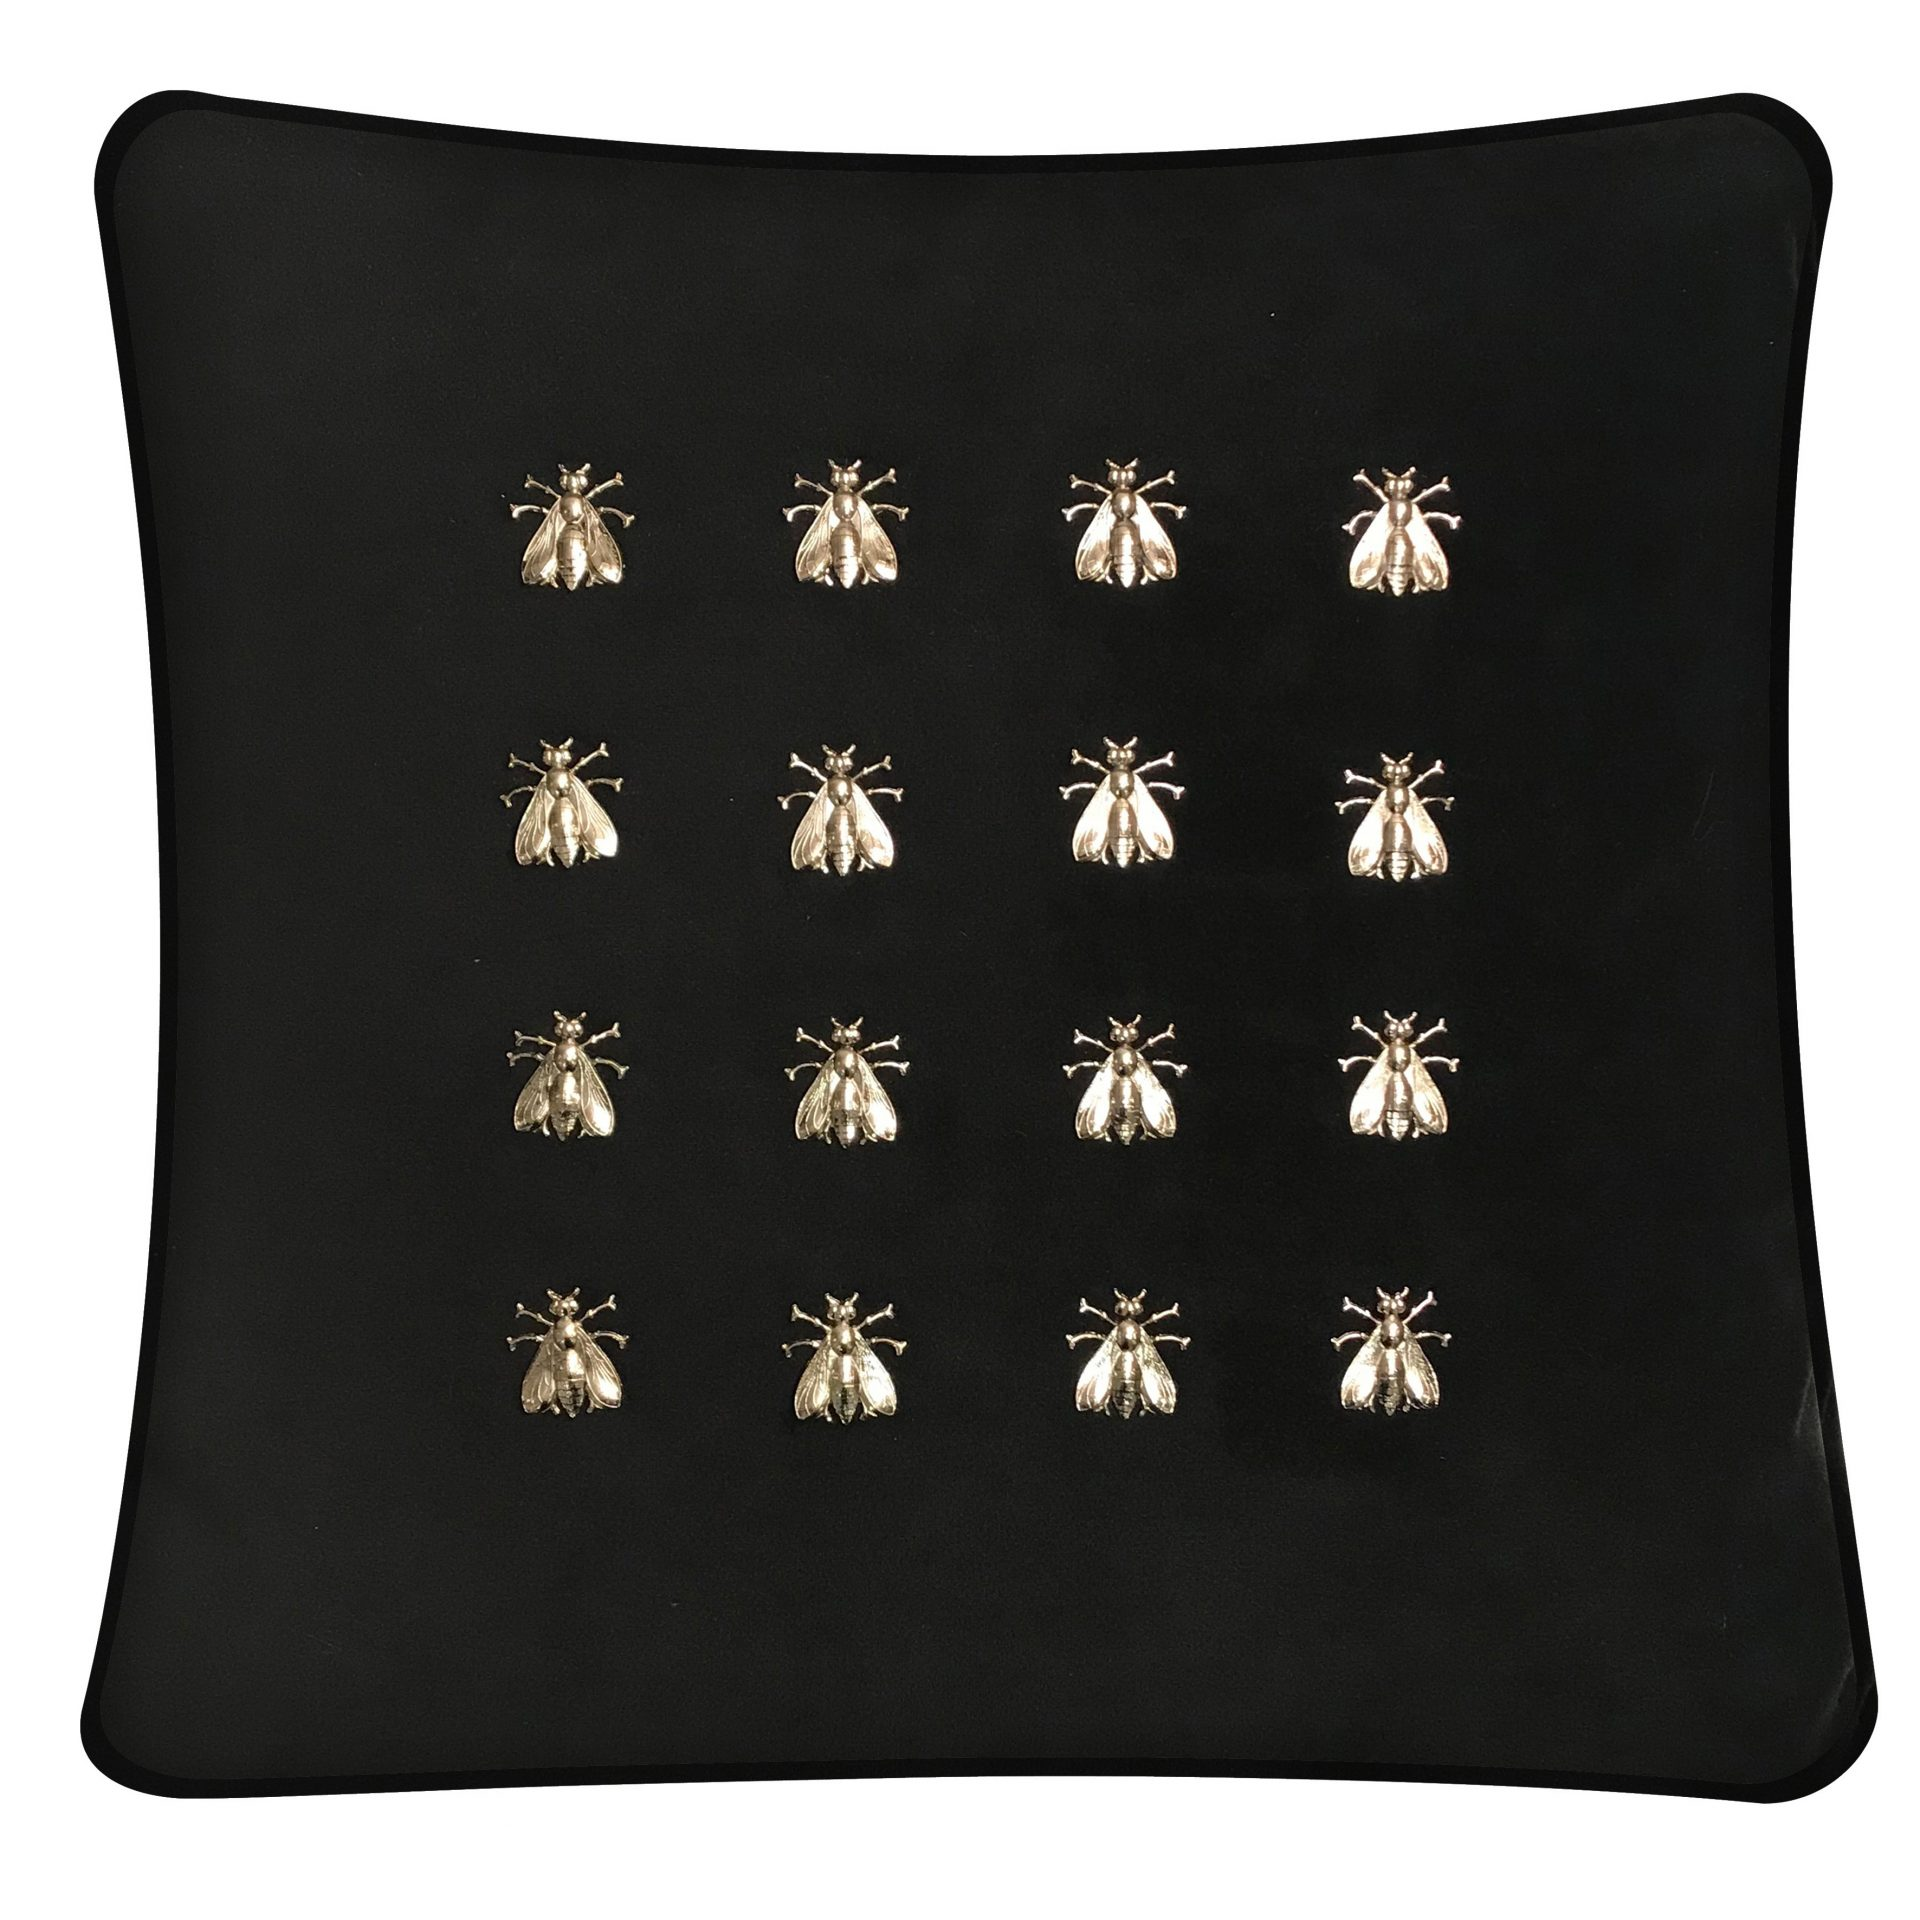 Black Velvet Throw Pillow with 16 Silver Bees.